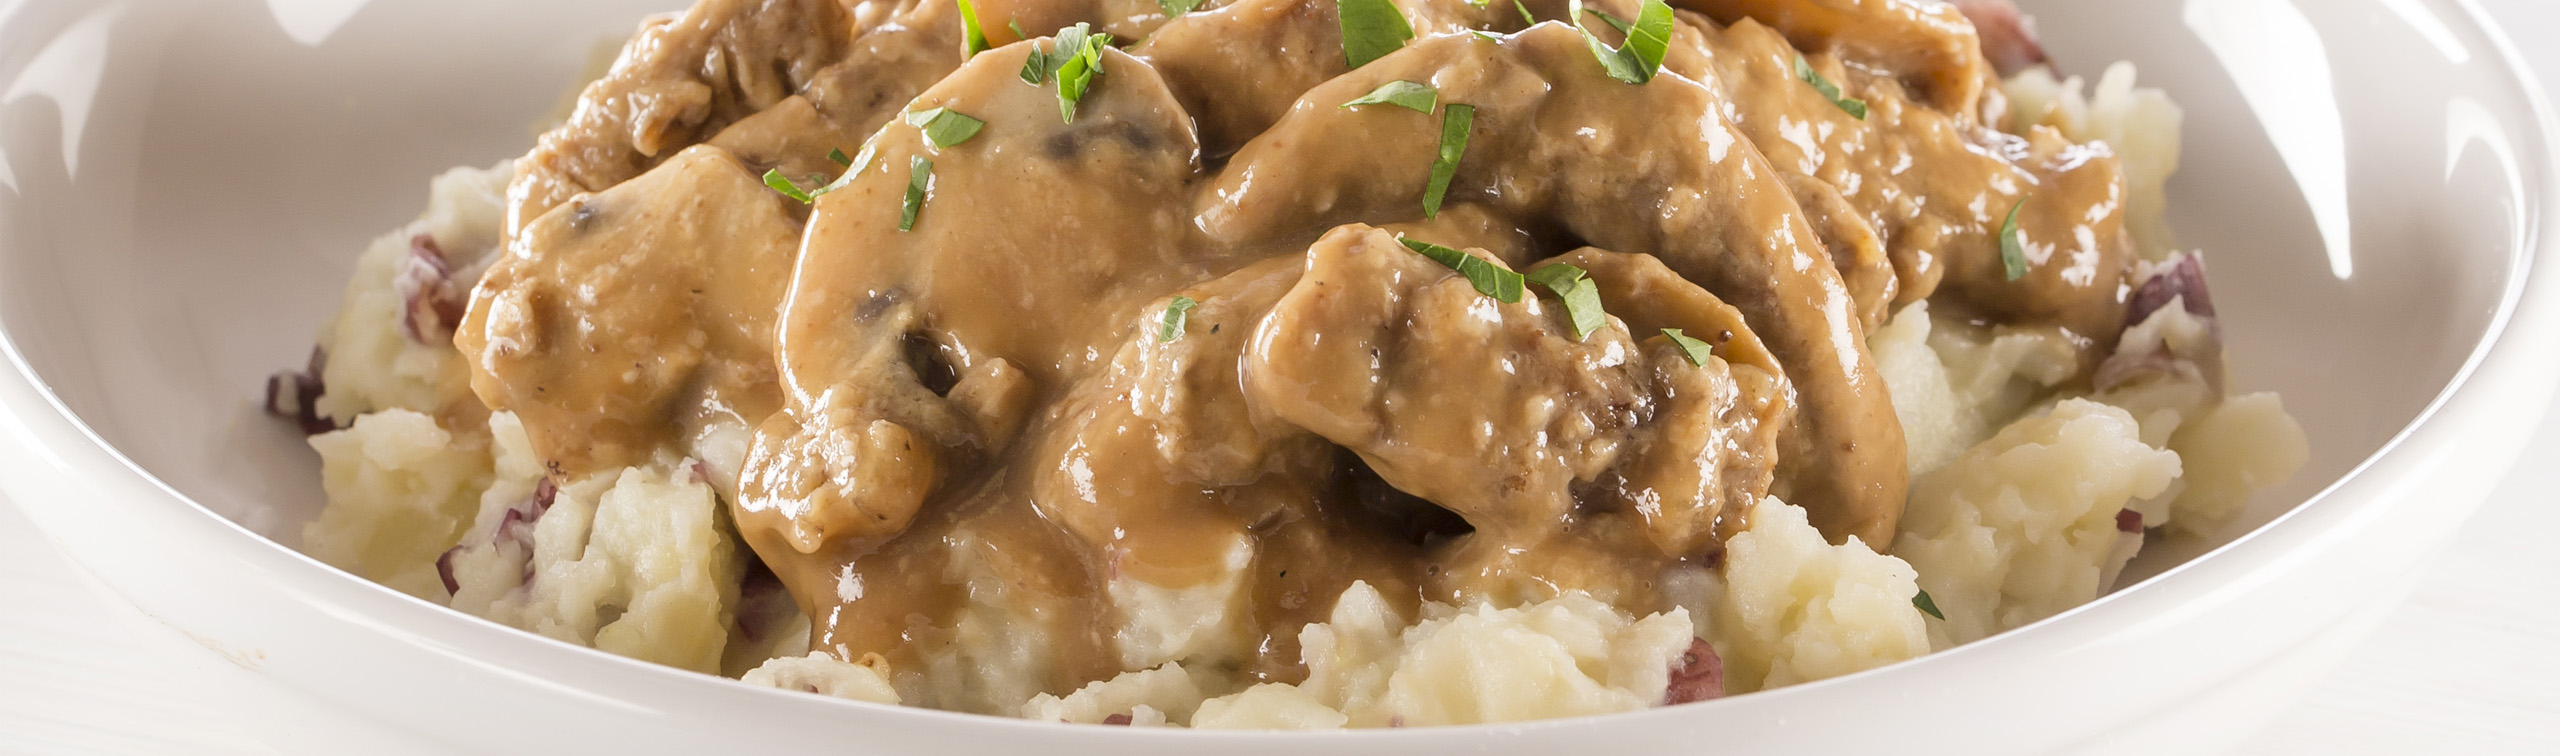 Beef Stroganoff Over Mashed Red Potatoes In My Kitchen